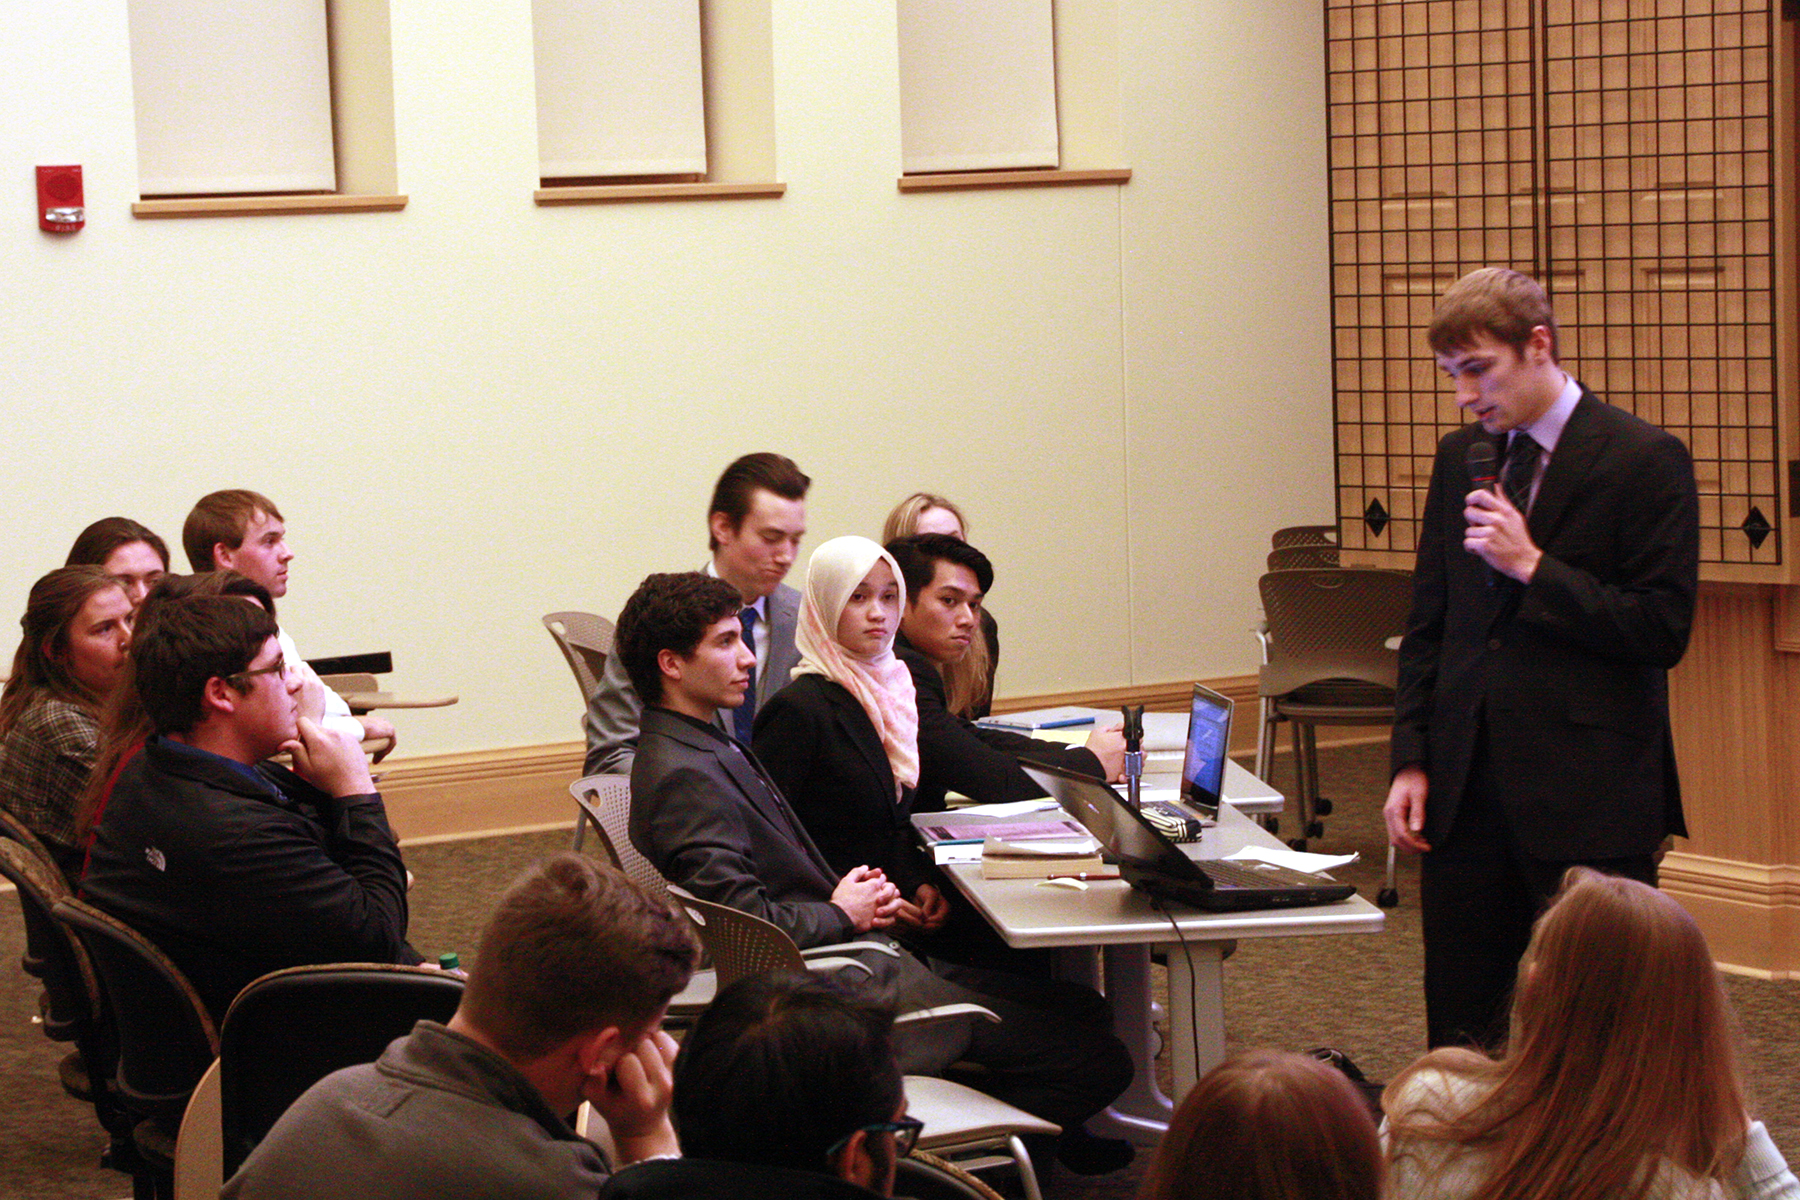 Student participants represent both parties in the mock trial, based on an actual 1986 trial.